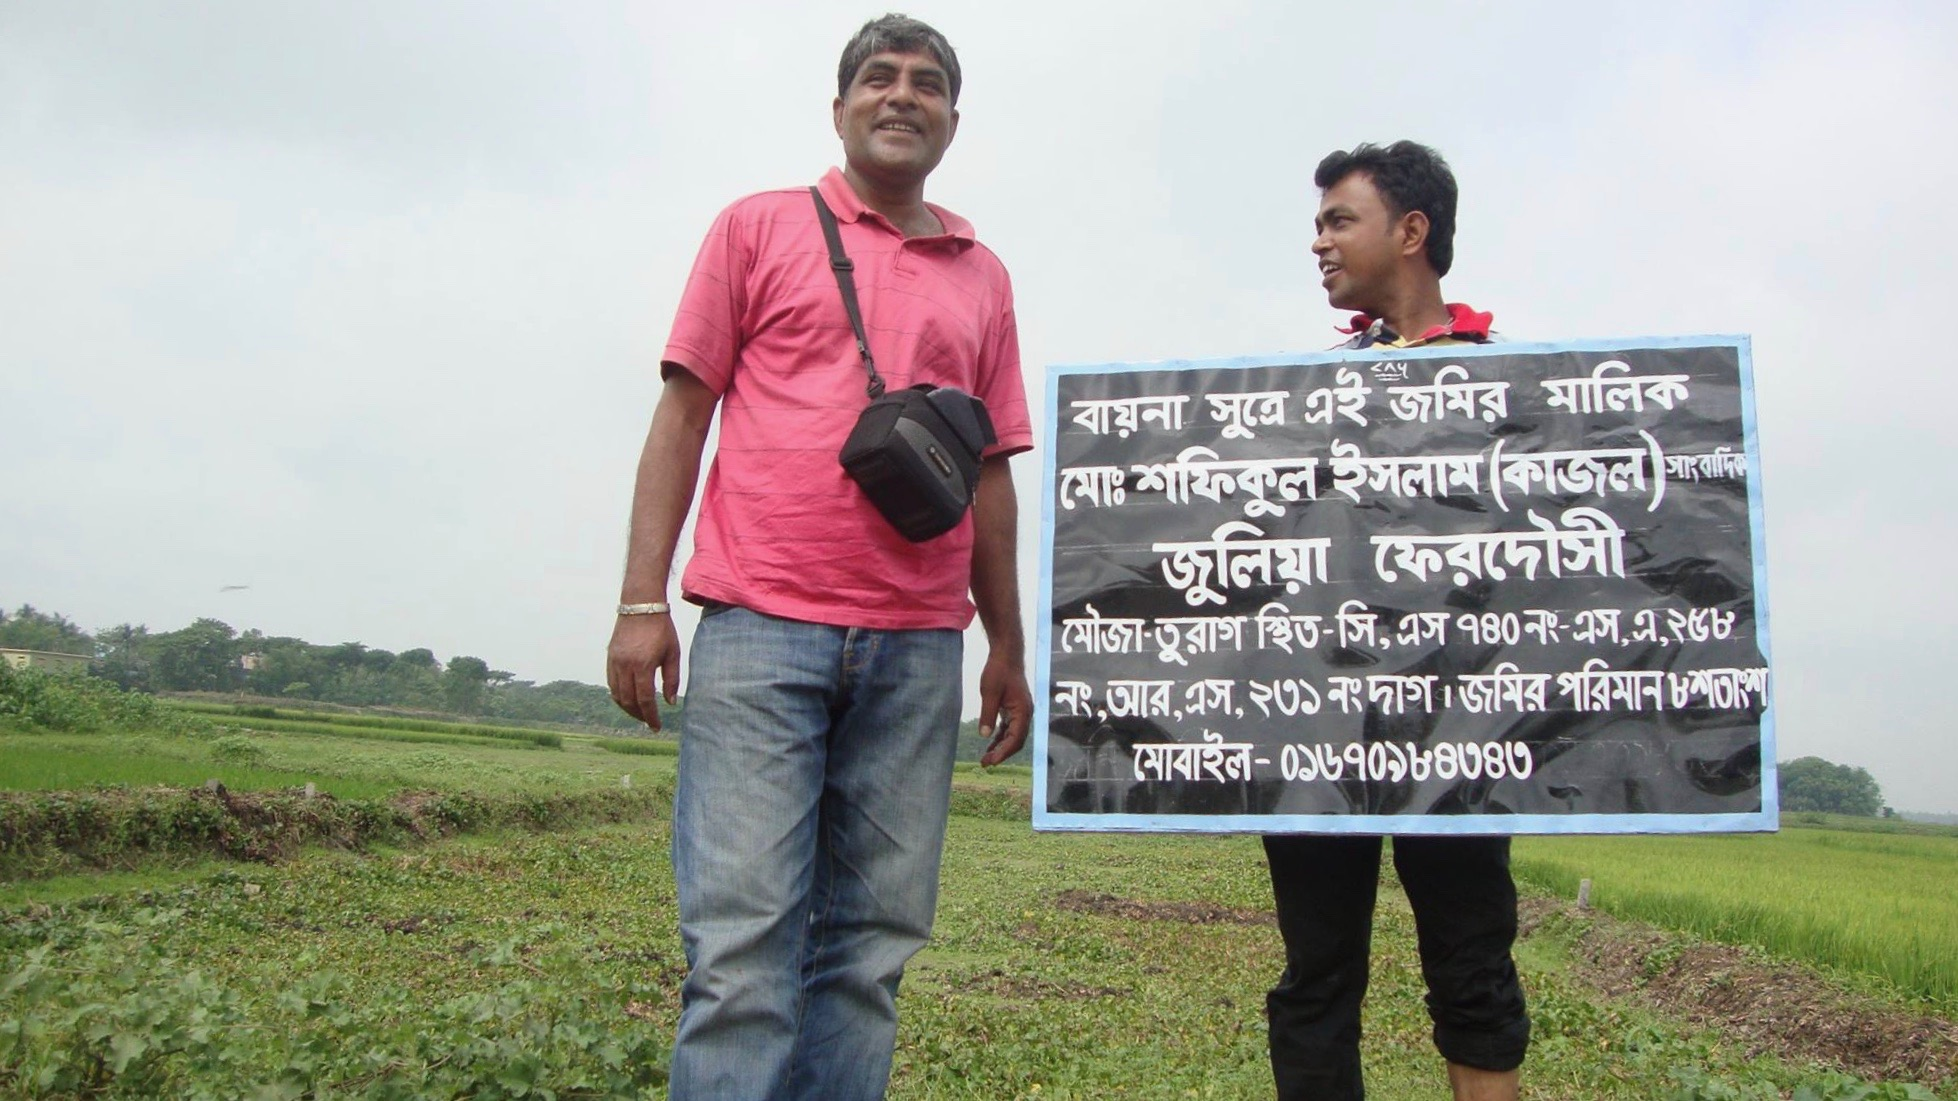 Bangladesh journalist missing